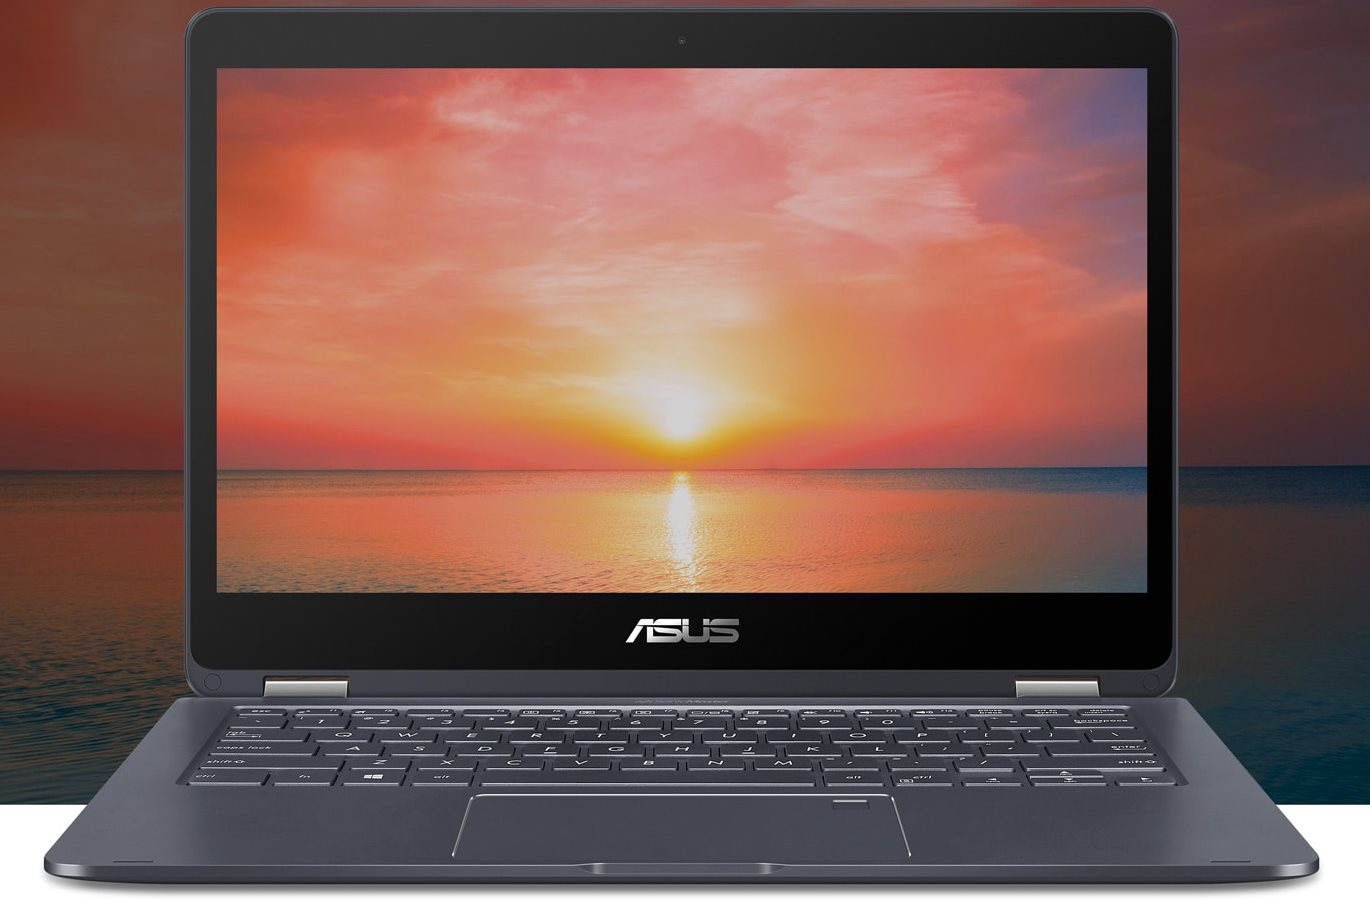 ASUS Sets New Record with Windows 10 Laptop Running 30 Days